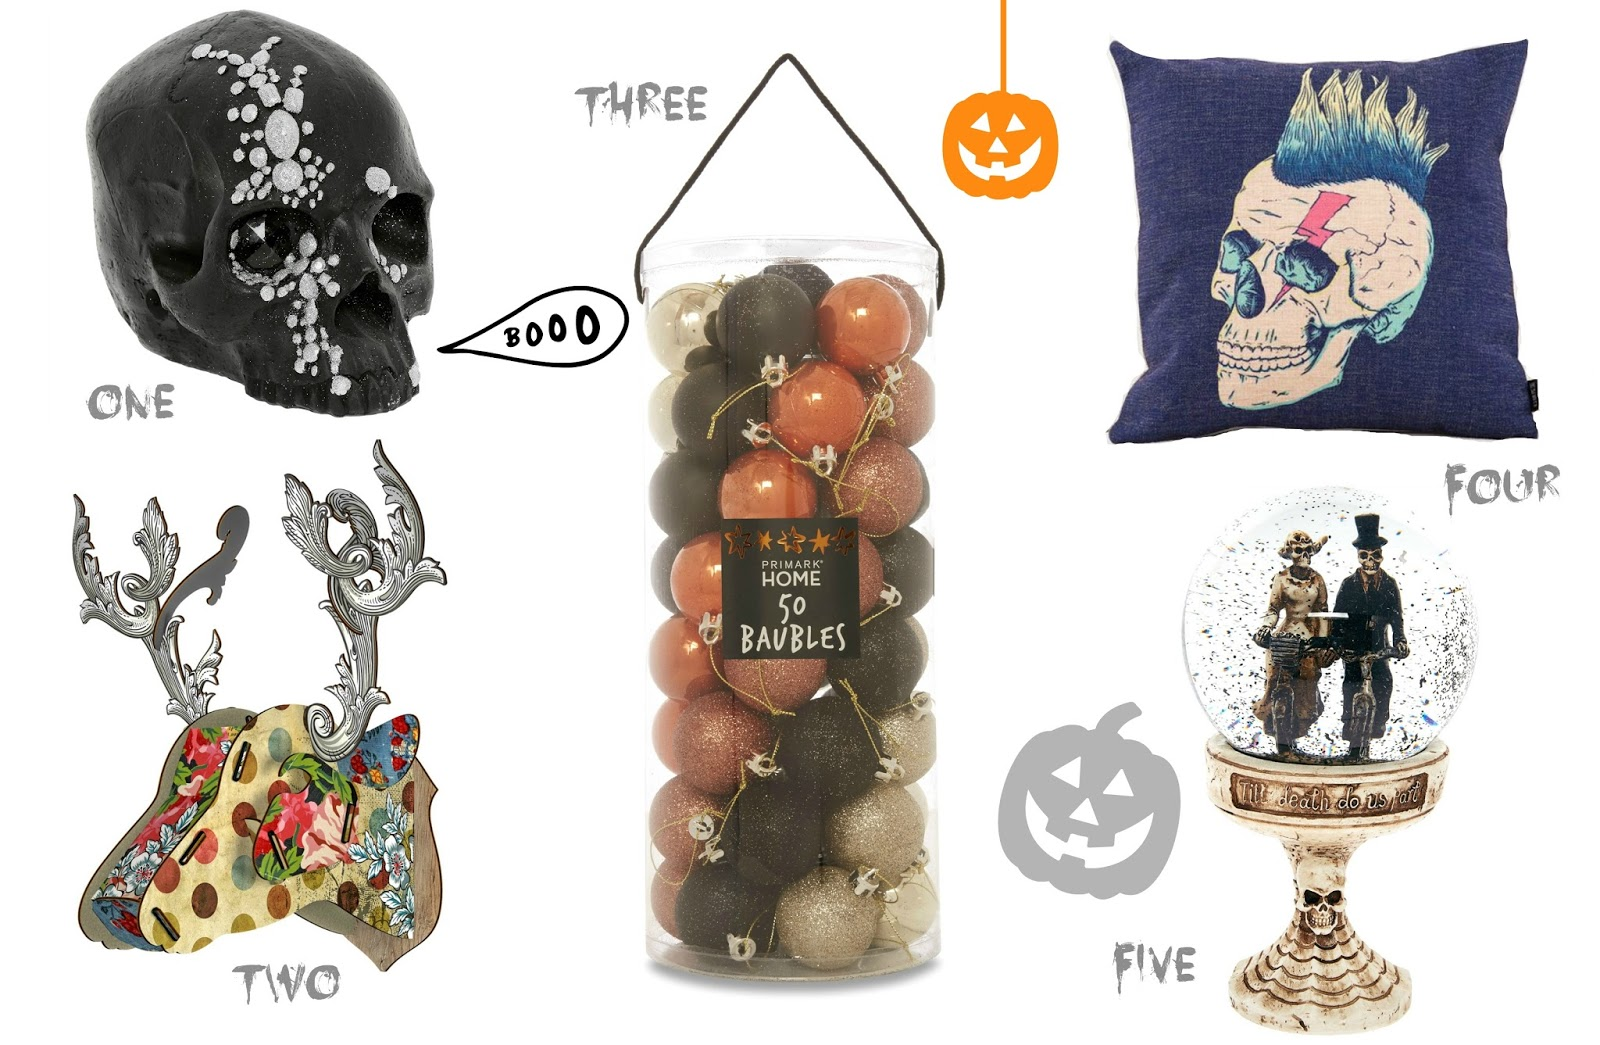 Formidable Joy | Formidable Joy Blog | Halloween | Homeware | Halloween Homeware | Homeware Wishlist